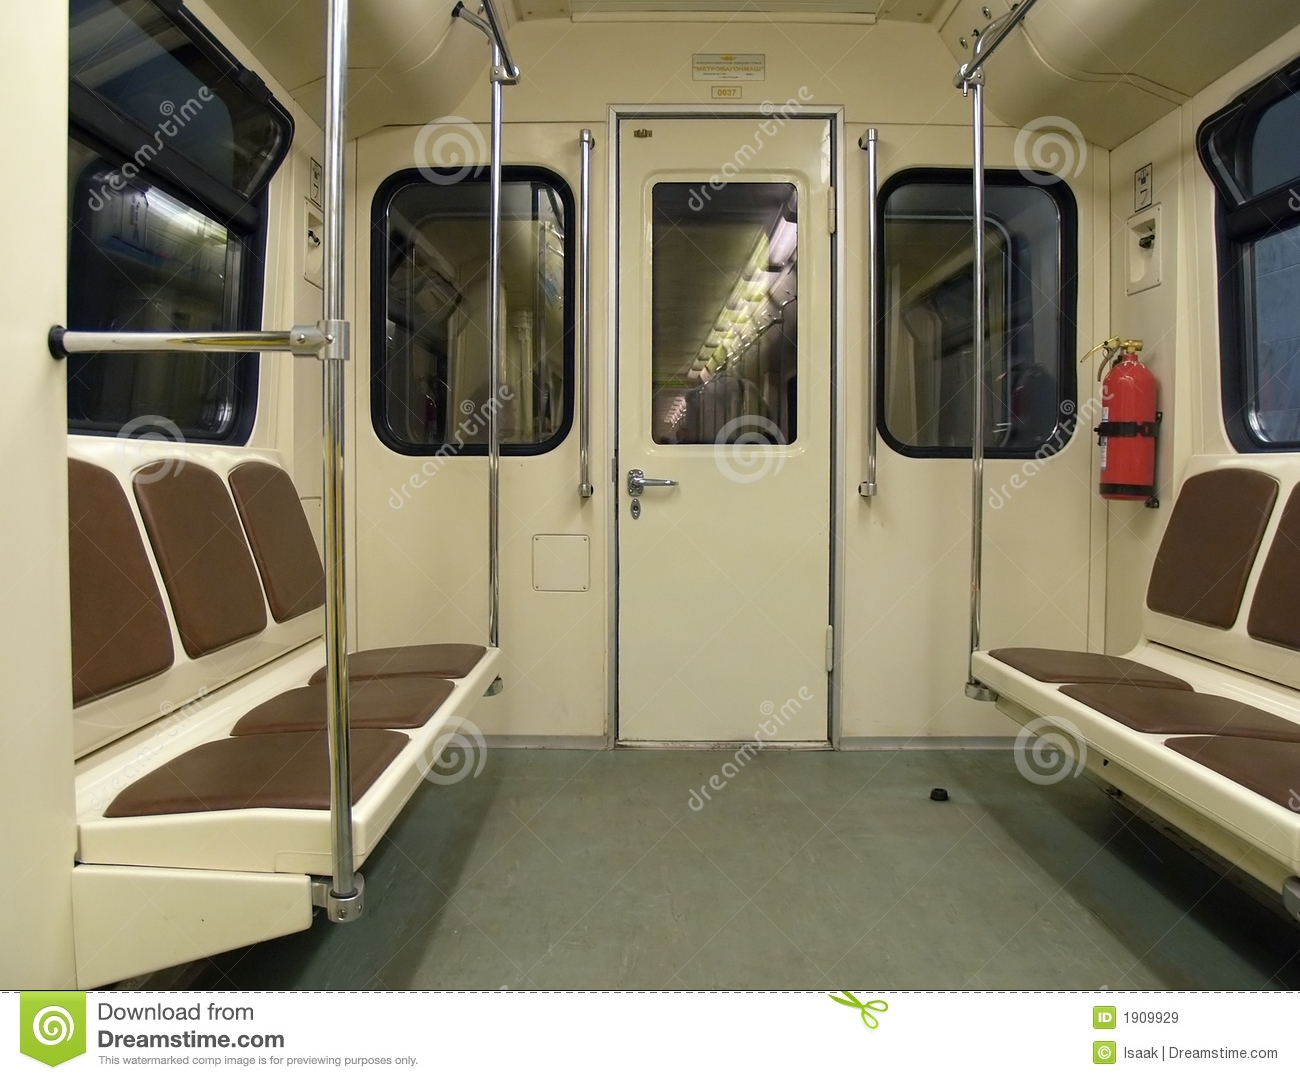 interior of a subway train stock image image of handrail 1909929. Black Bedroom Furniture Sets. Home Design Ideas